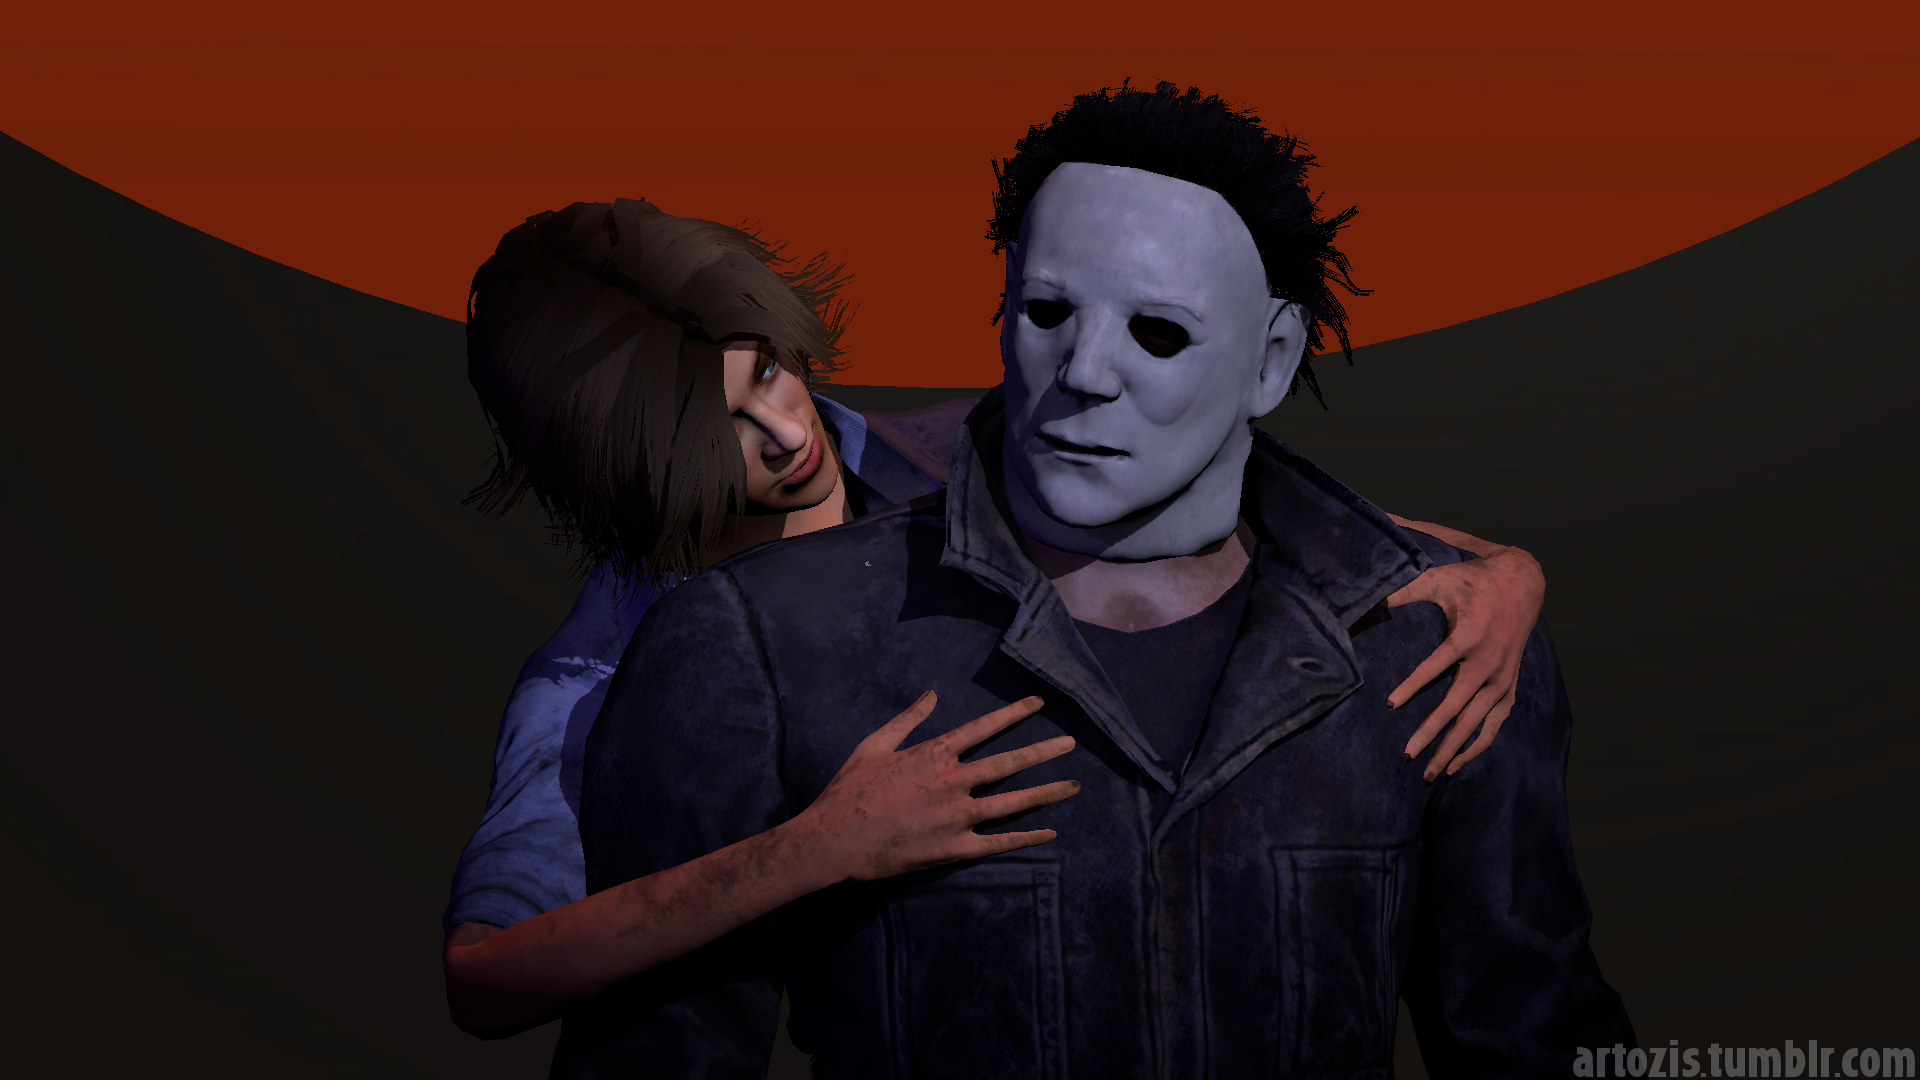 Michael Myers is not bad. Michael myers, Michael myers